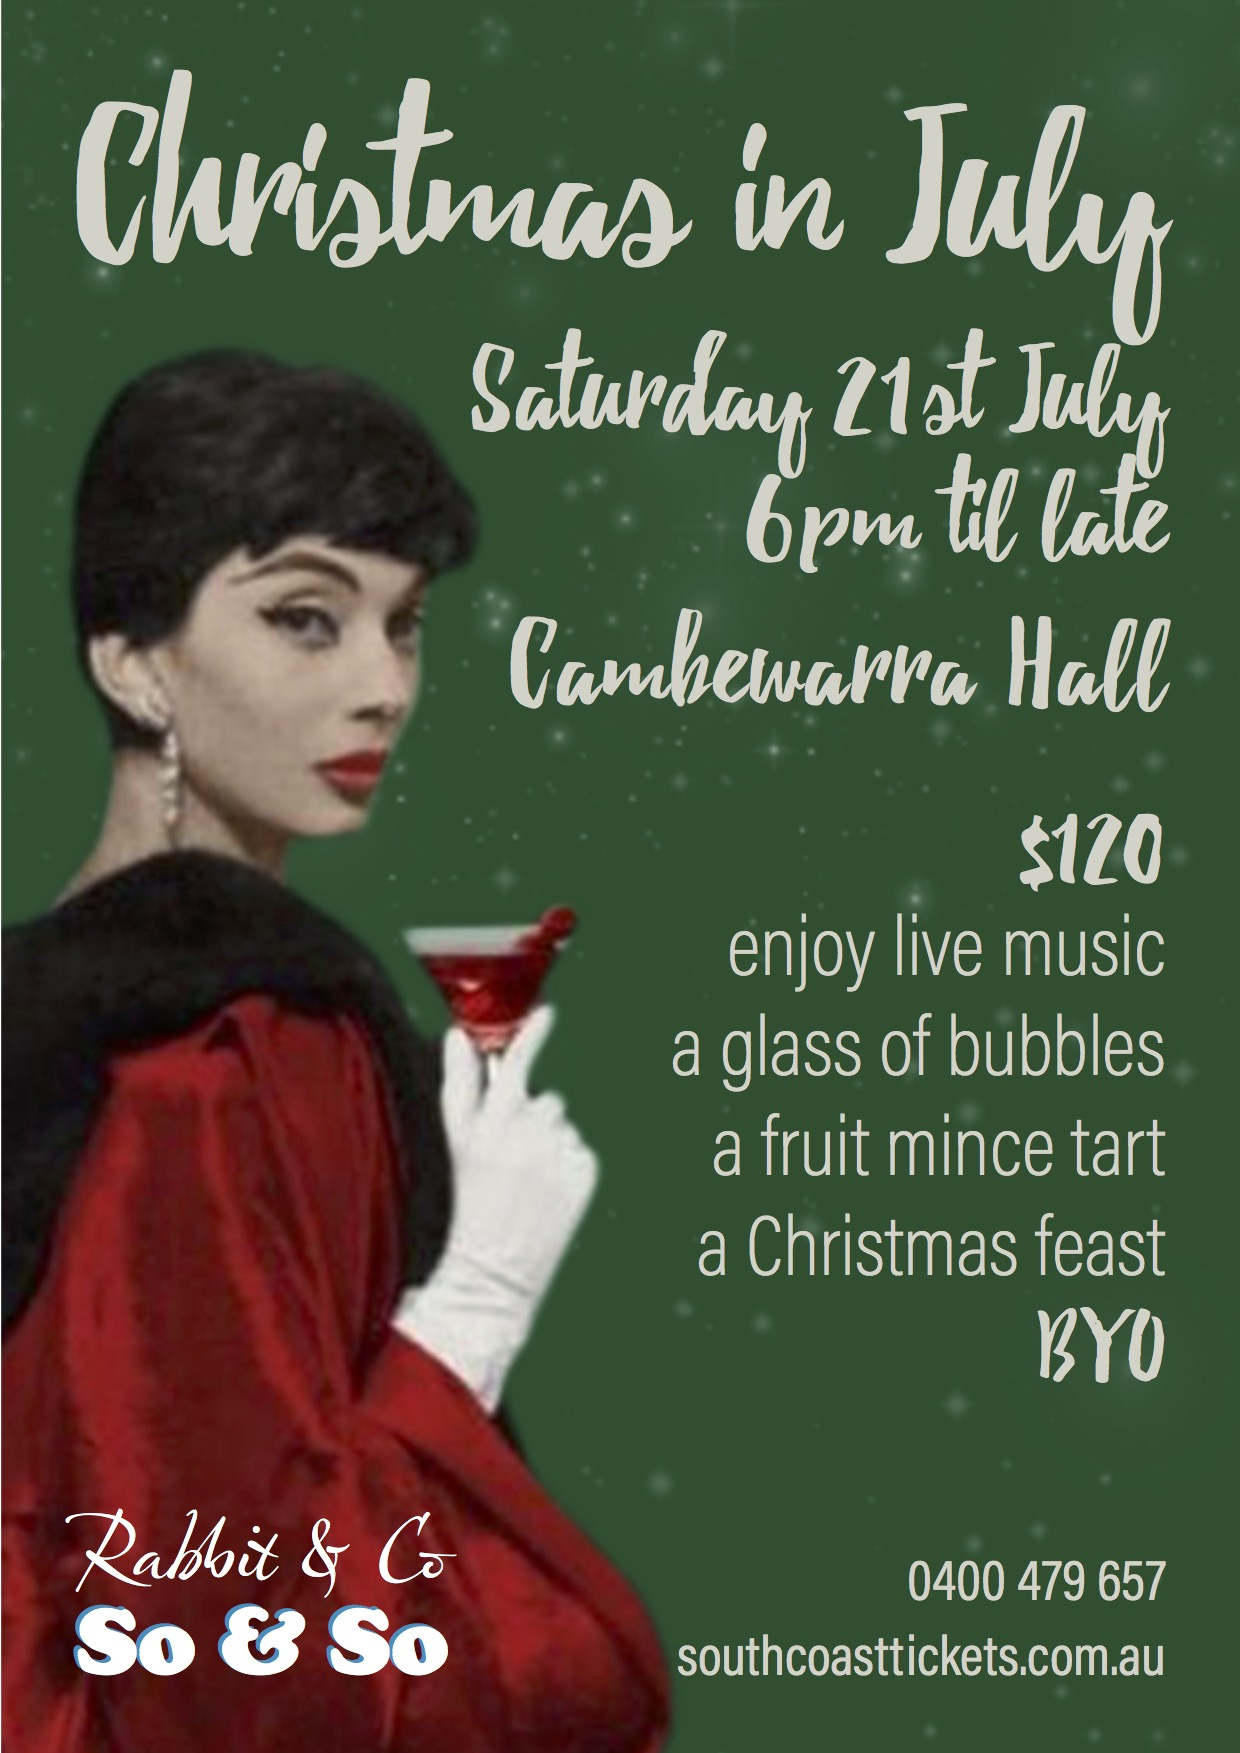 'Christmas in July' a feast of food and music